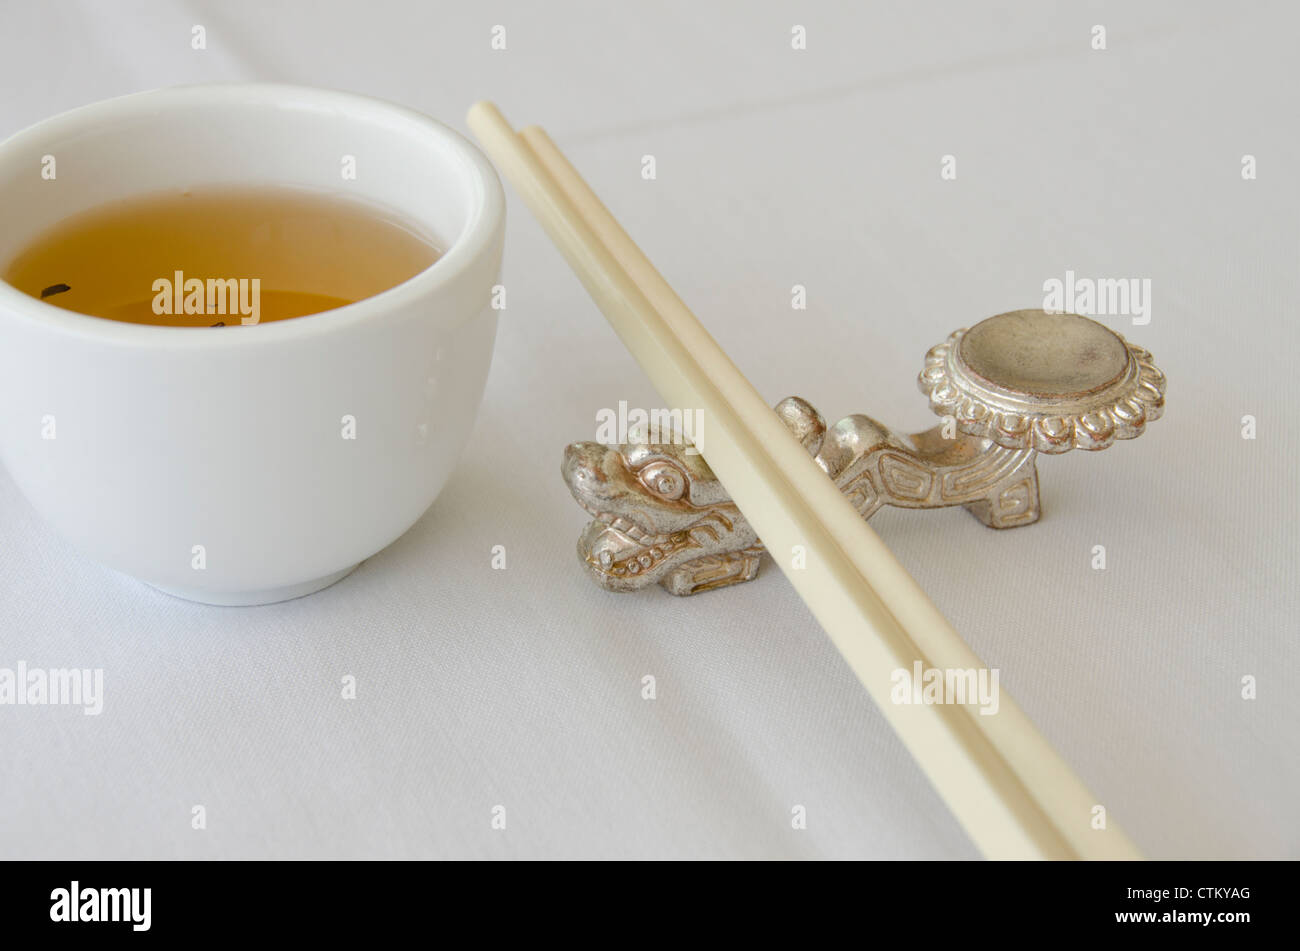 Canada, Ontario, Toronto. Detail of Chinese restaurant table, hot tea and chop sticks on silver dragon rest. Stock Photo